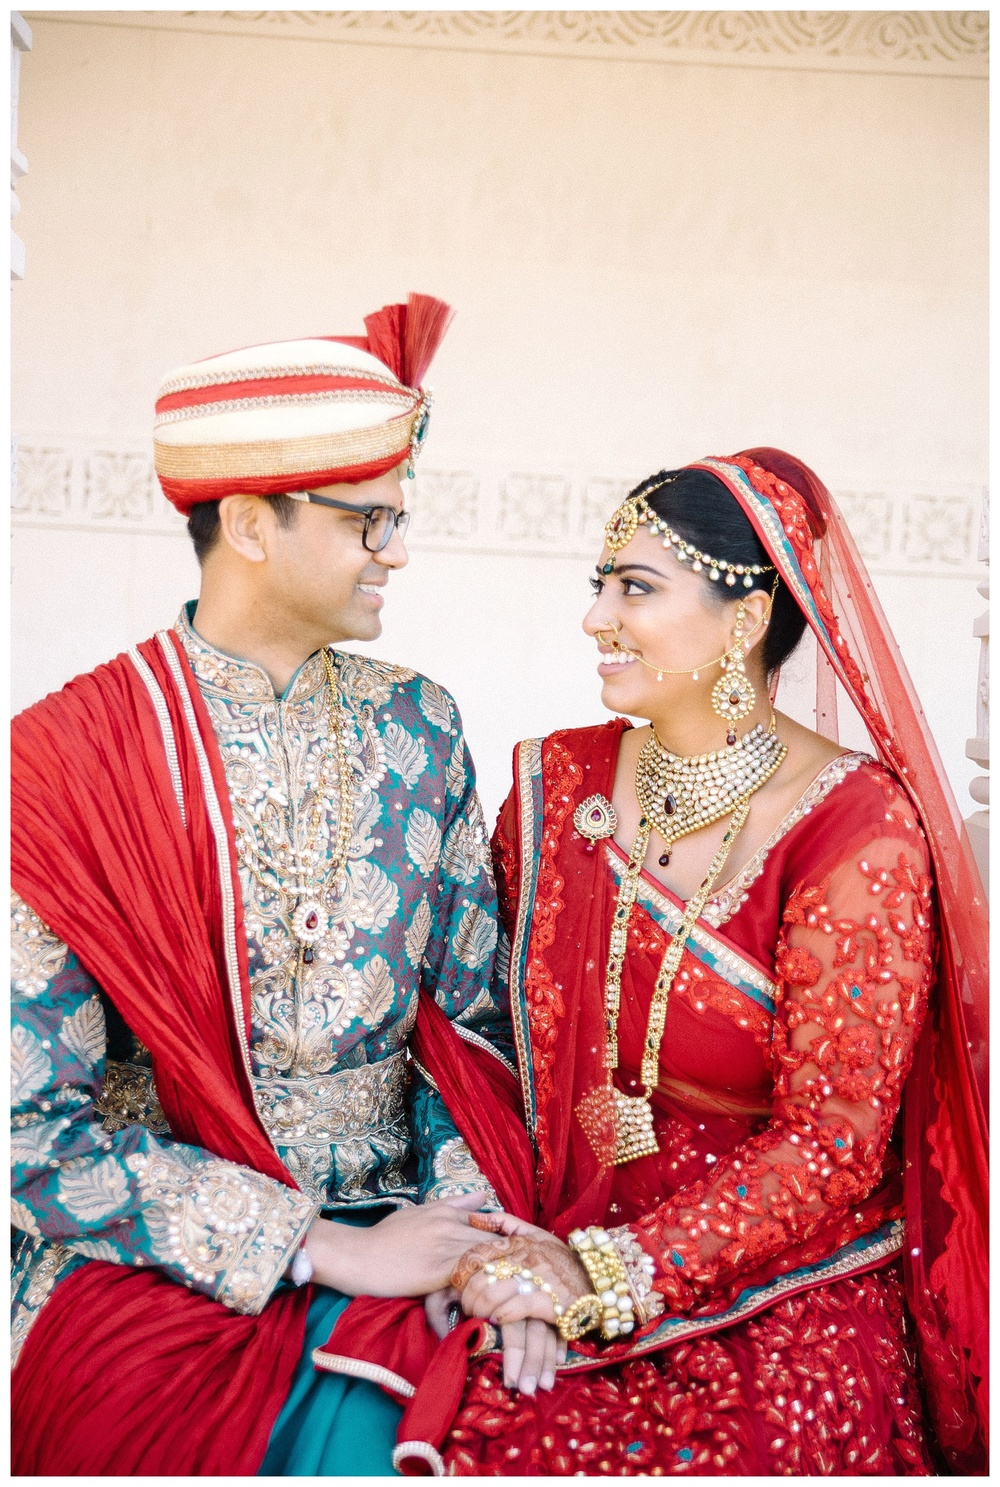 Atlanta BAPS Wedding Photographer-BAPS Indian wedding photos (402 of 2502).jpg